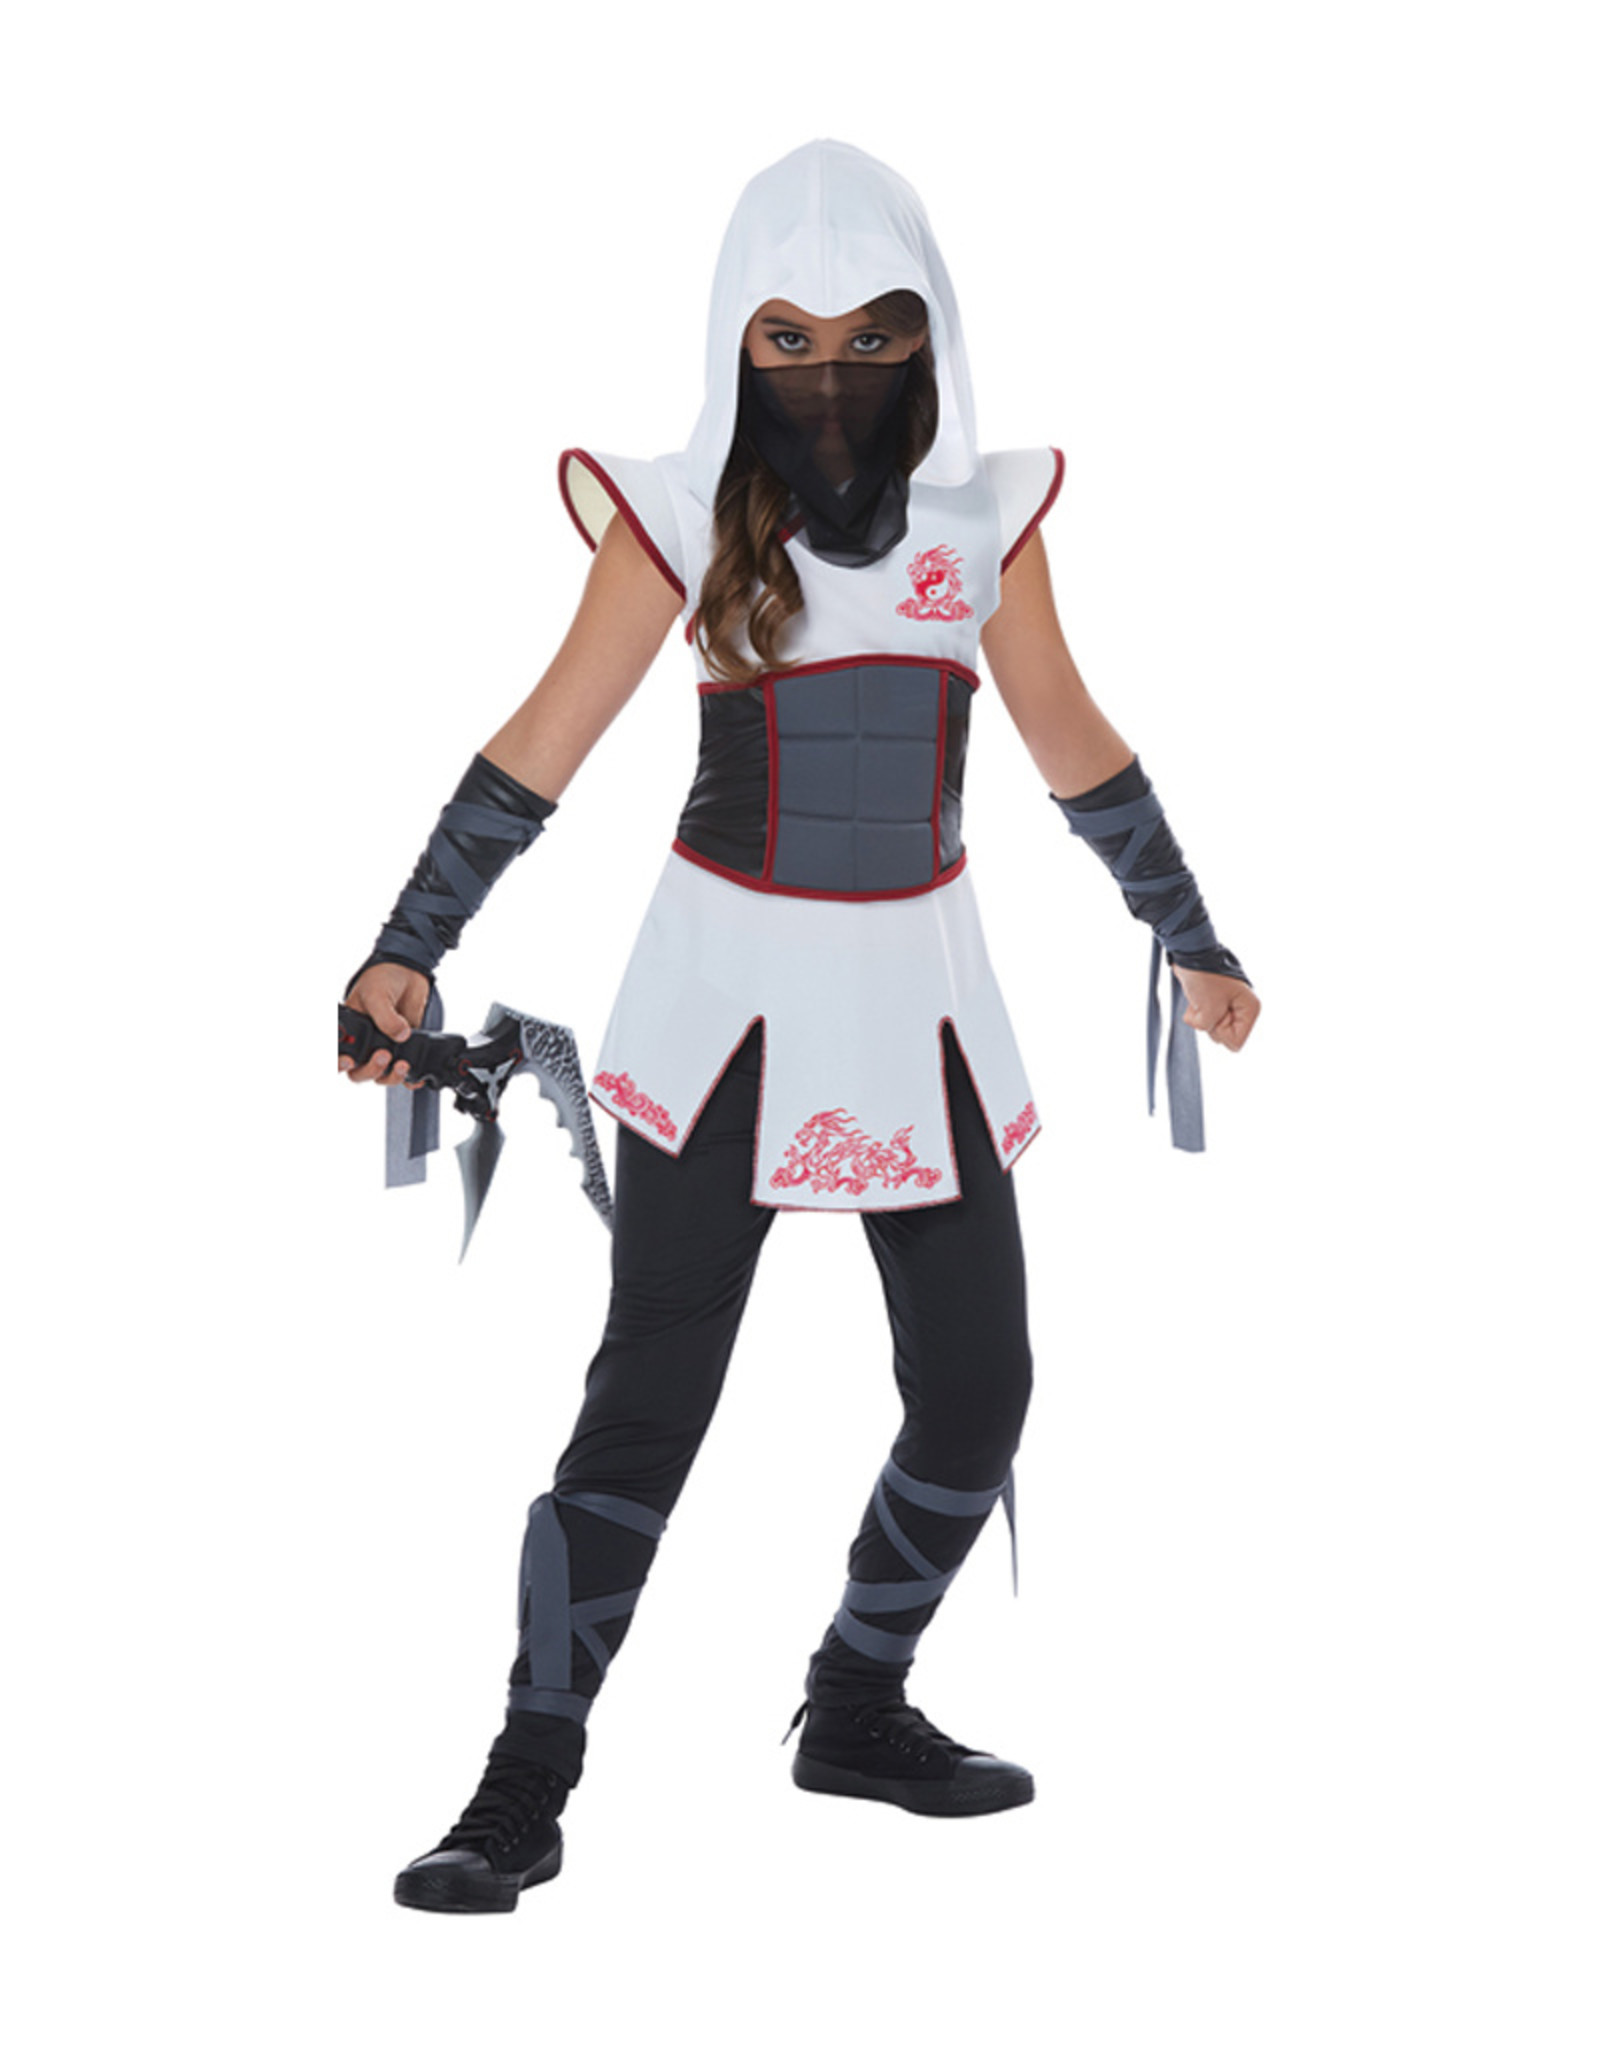 Fearless Ninja Costume - Girls